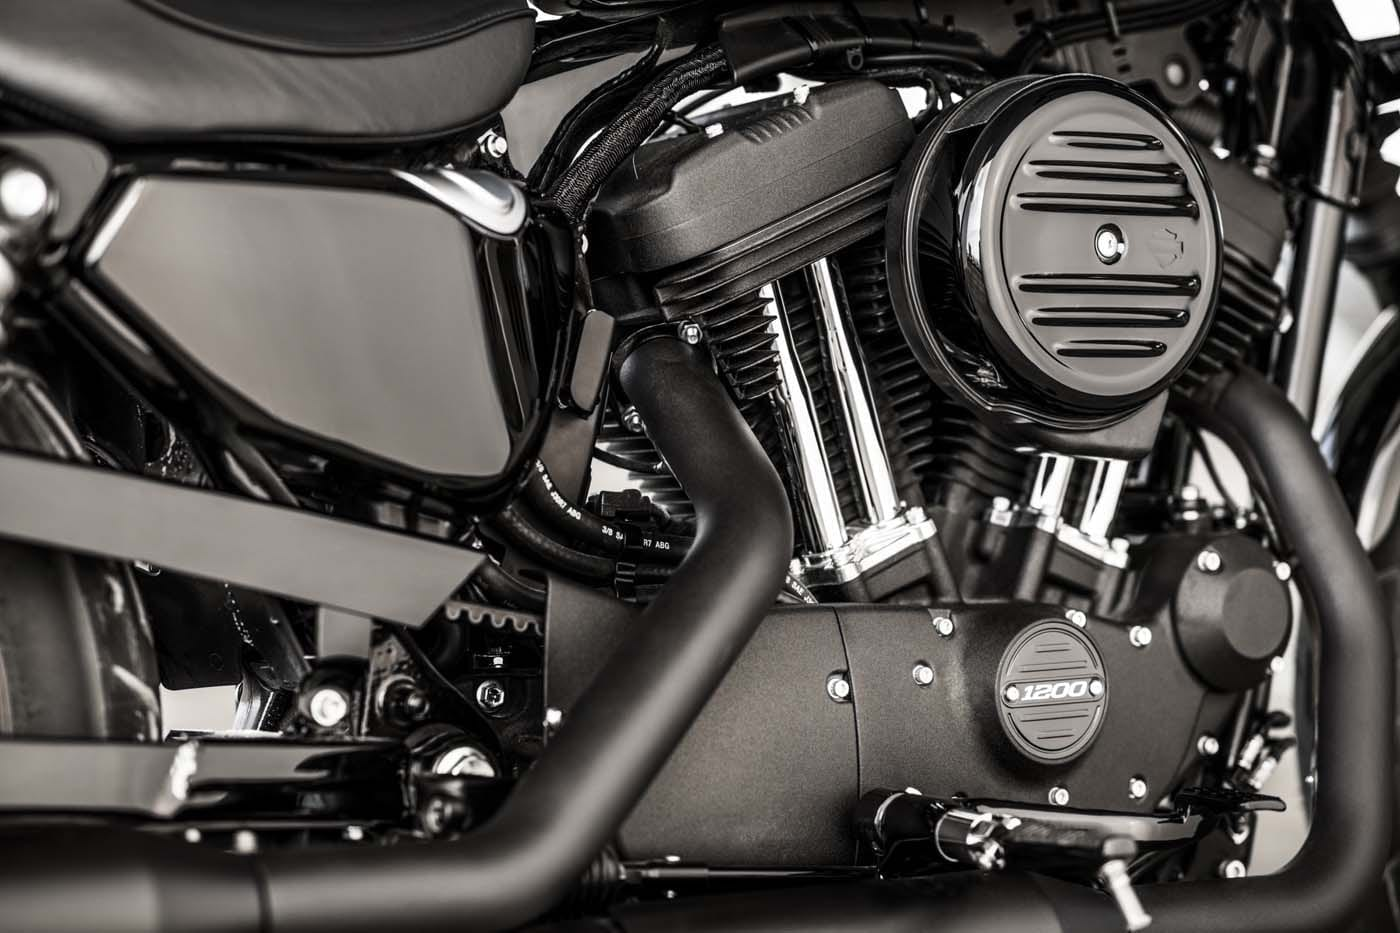 HARLEY-DAVIDSON FORTY-EIGHT SPECIAL AND IRON 1200 SPORTSTERS 8